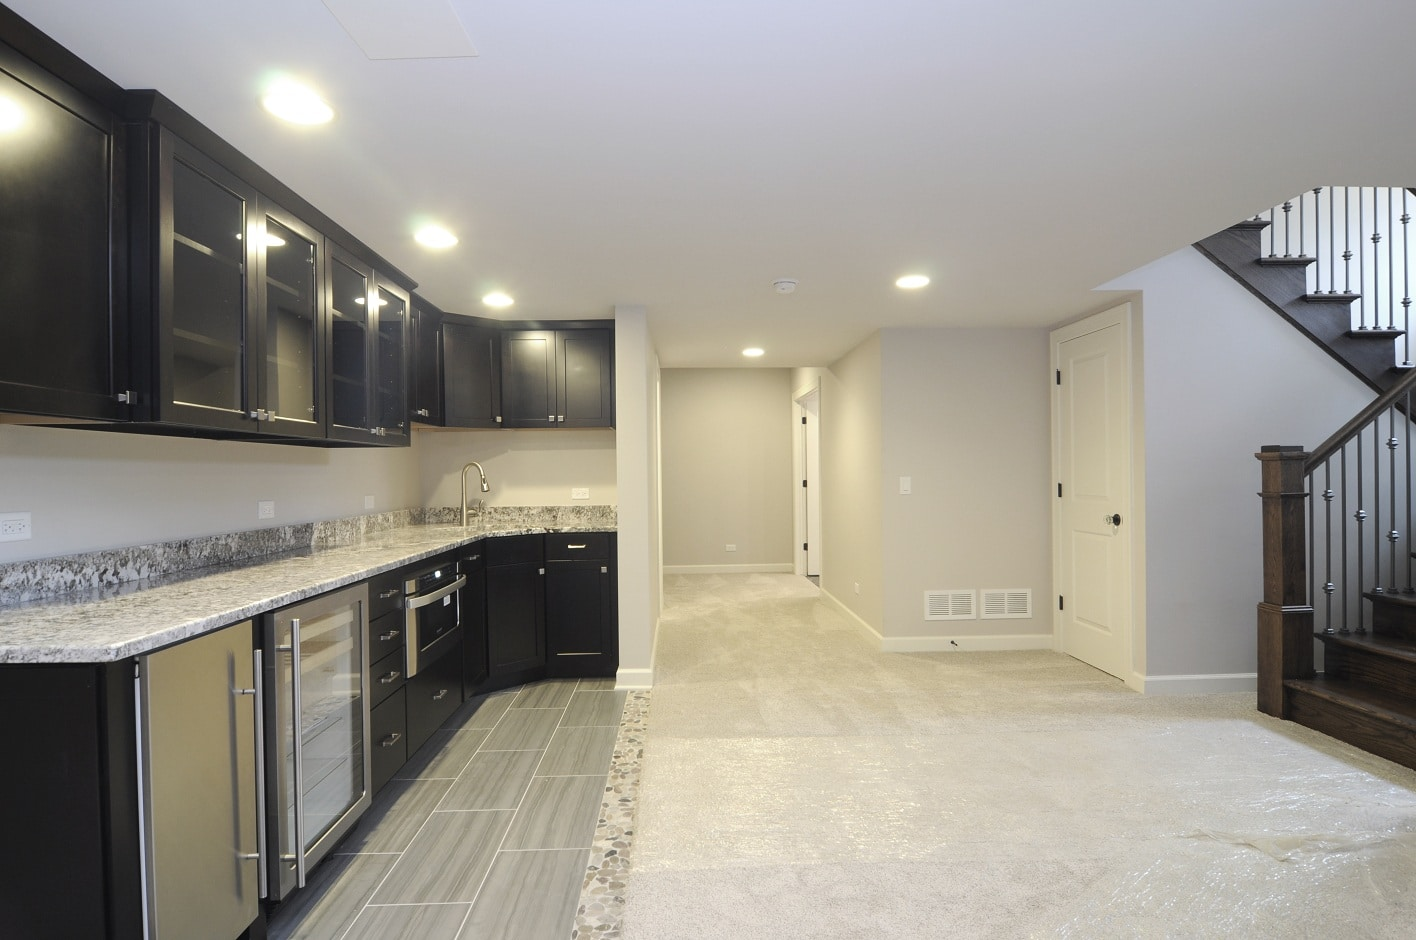 basement remodeling experts in Chicago IL